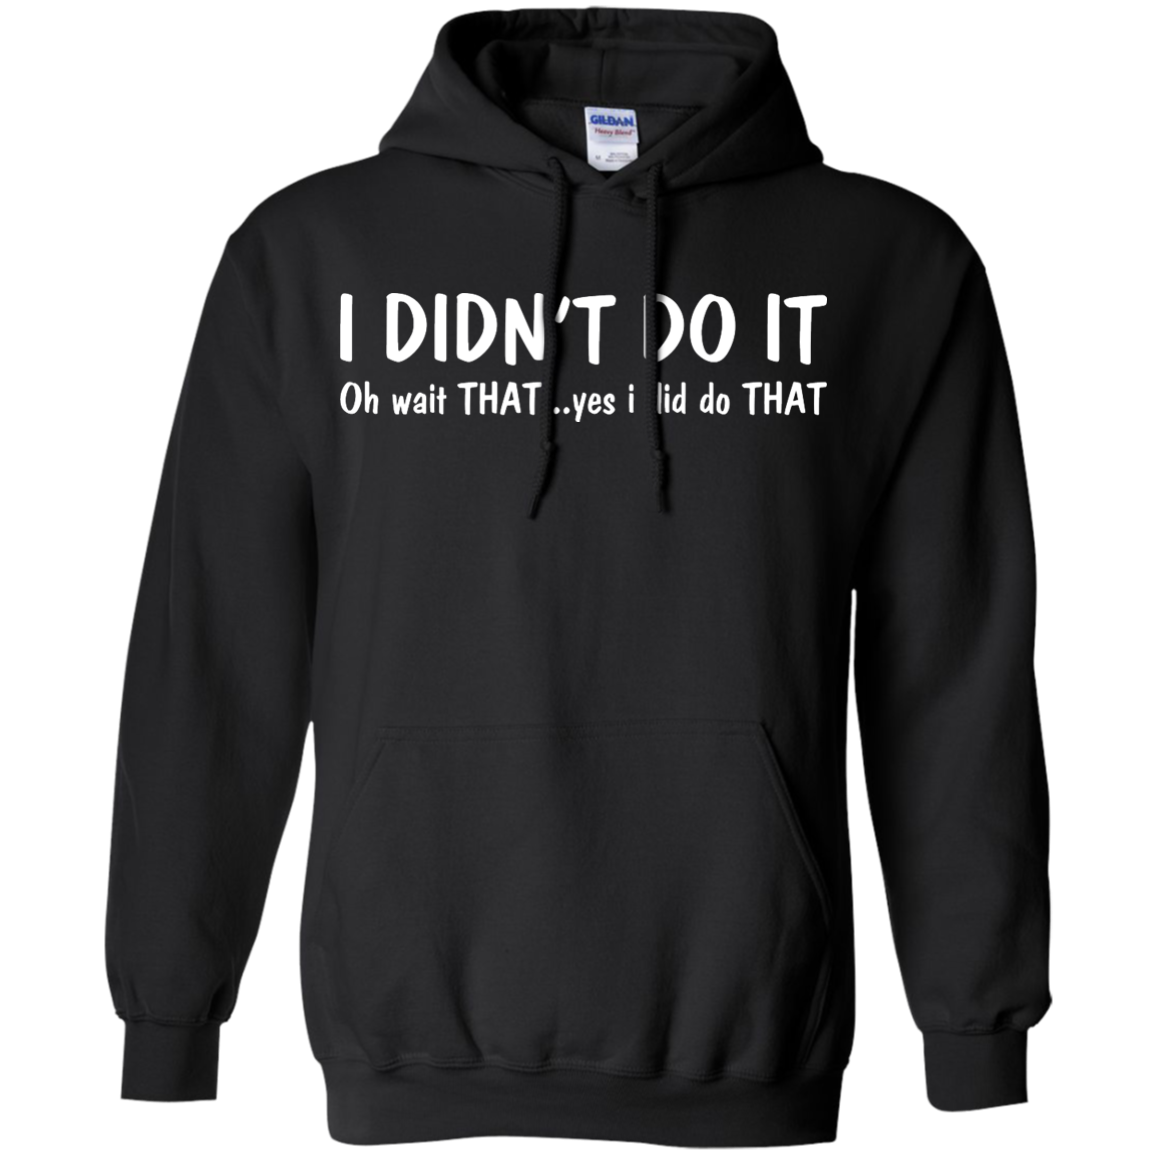 Funny t-shirt: I Didn't Do It shirt, sweater, tank